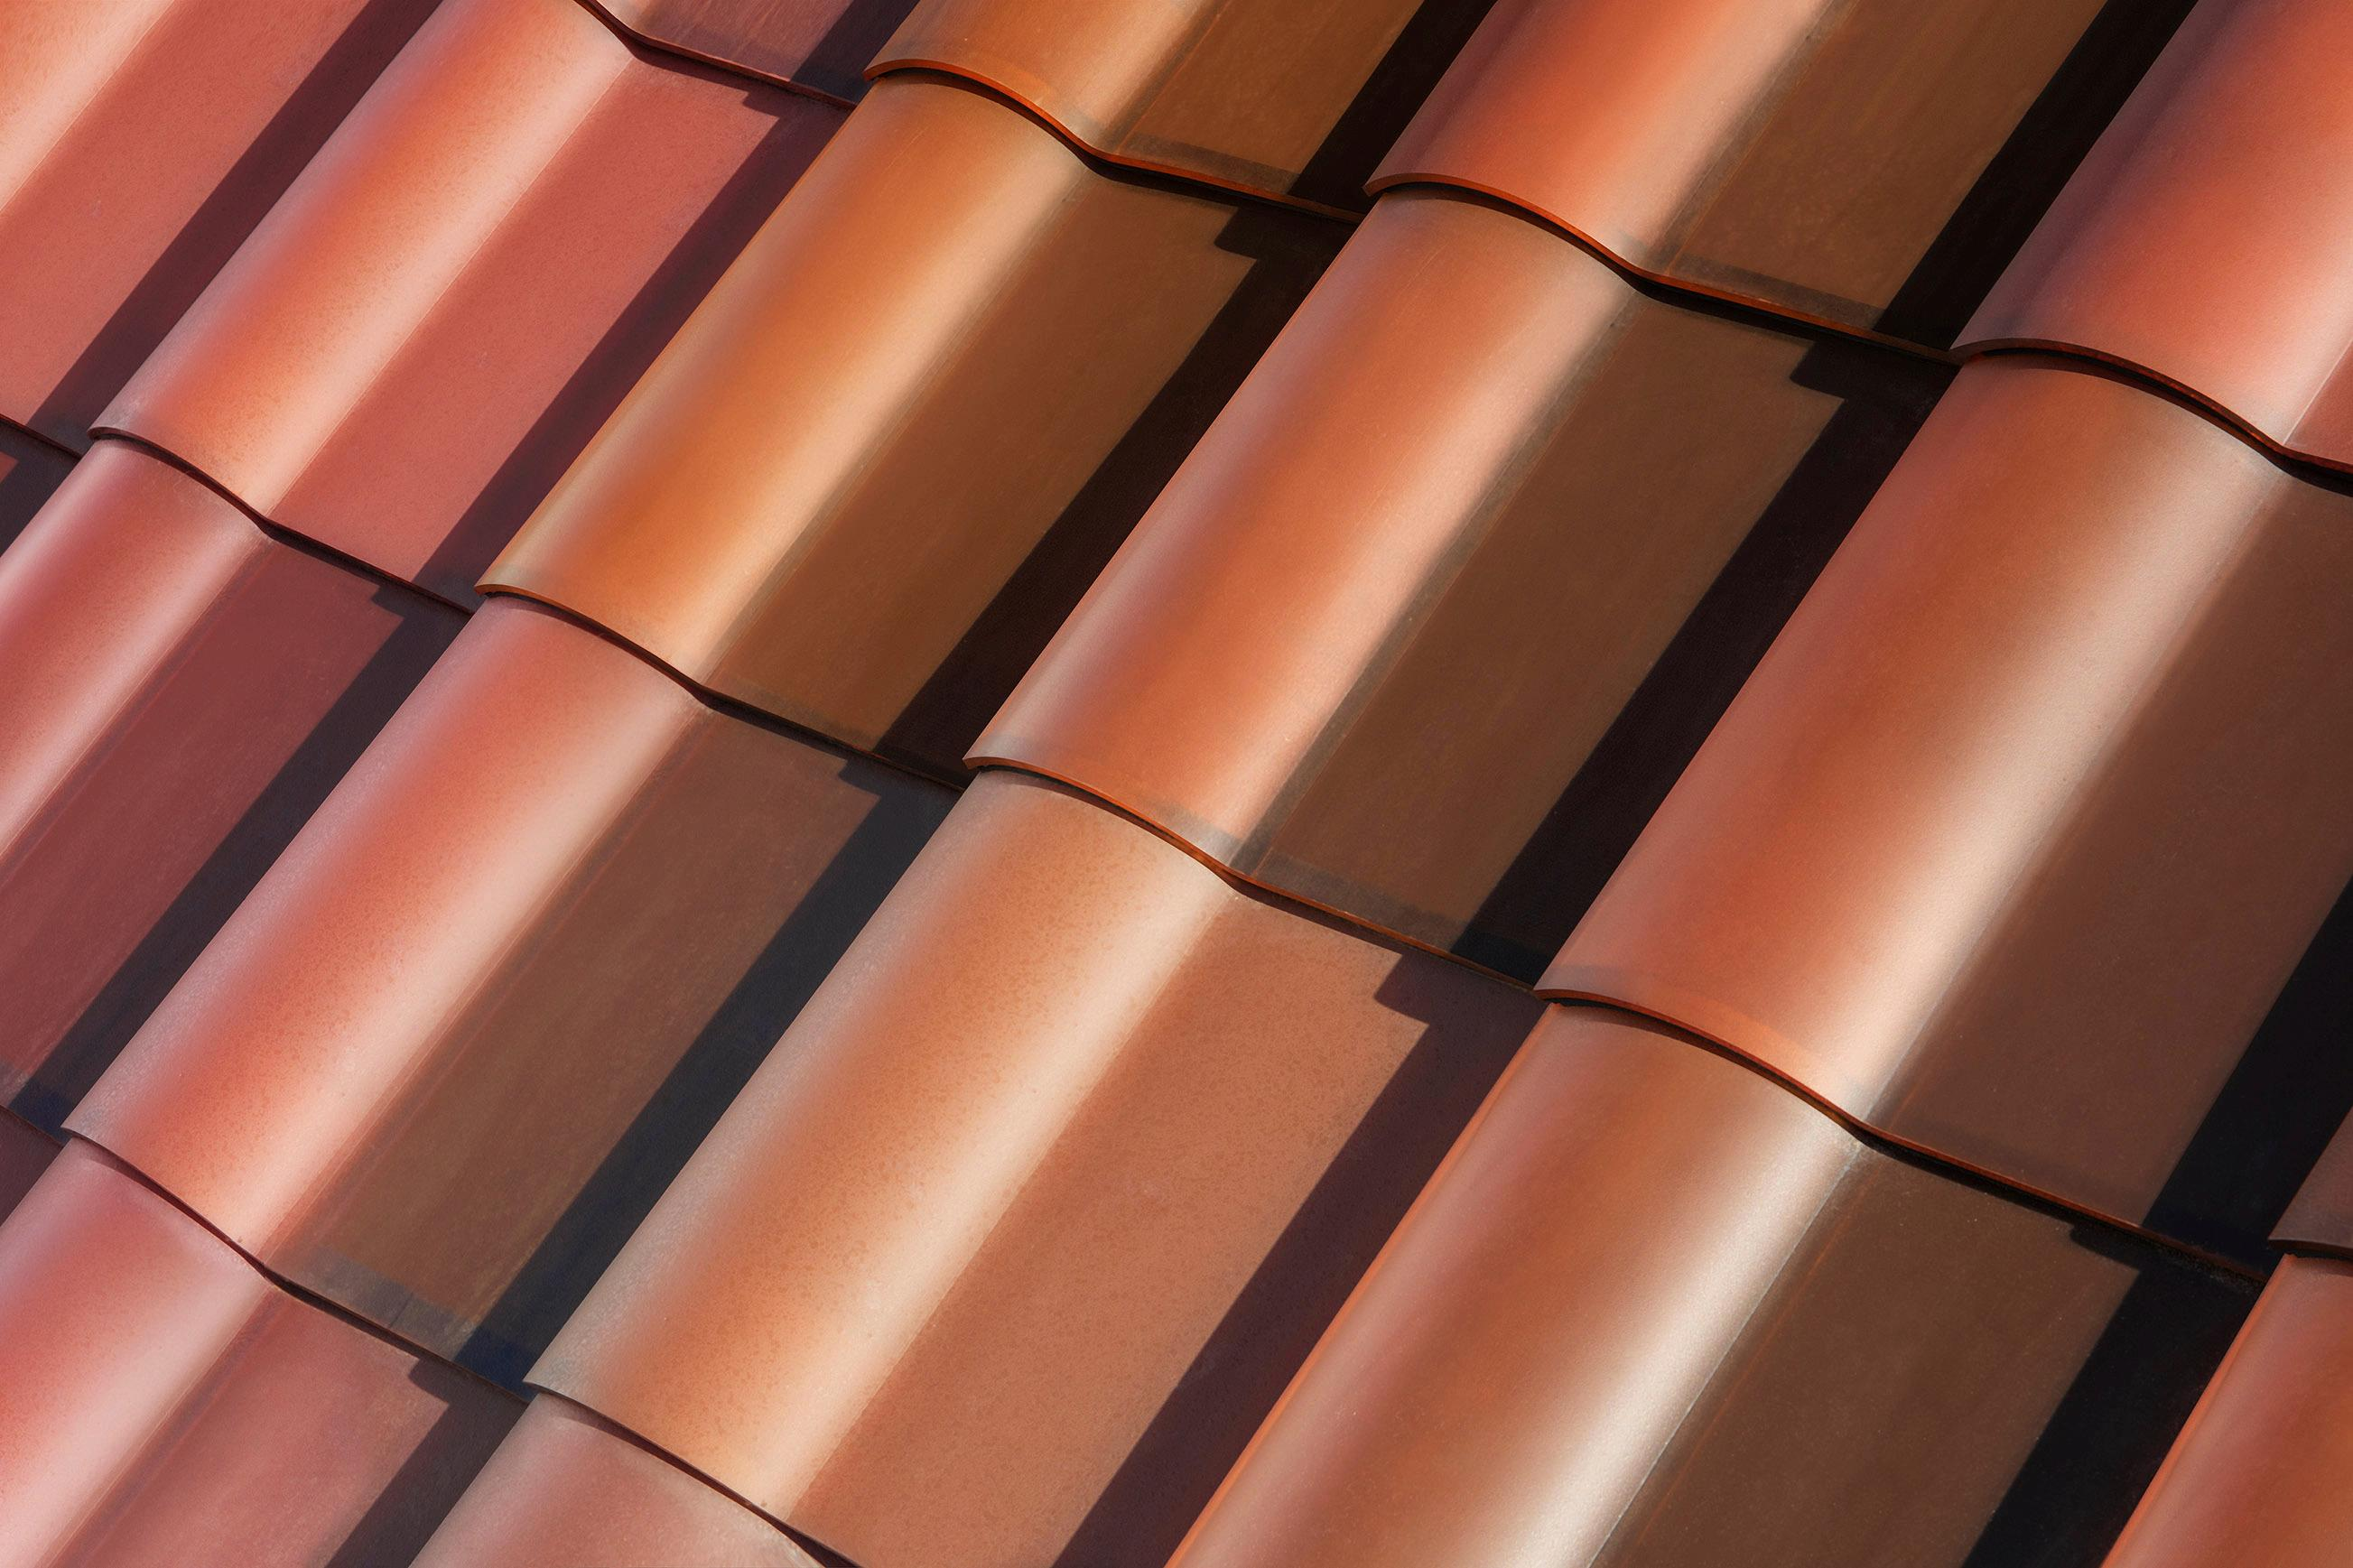 This photo provided by Tesla shows a detail of Tesla's new terracotta solar roof tiles. As of Wednesday, May 10, 2017, customers worldwide could order a solar roof on Tesla's website. The glass tiles are designed to look like a traditional roof, with options that replicate slate or terracotta tiles. The solar tiles contain photovoltaic cells that are invisible from the street. Installations will begin in June in the U.S., starting with California. Installations outside the U.S. will begin in 2018, the company said. (Courtesy of Tesla via AP)